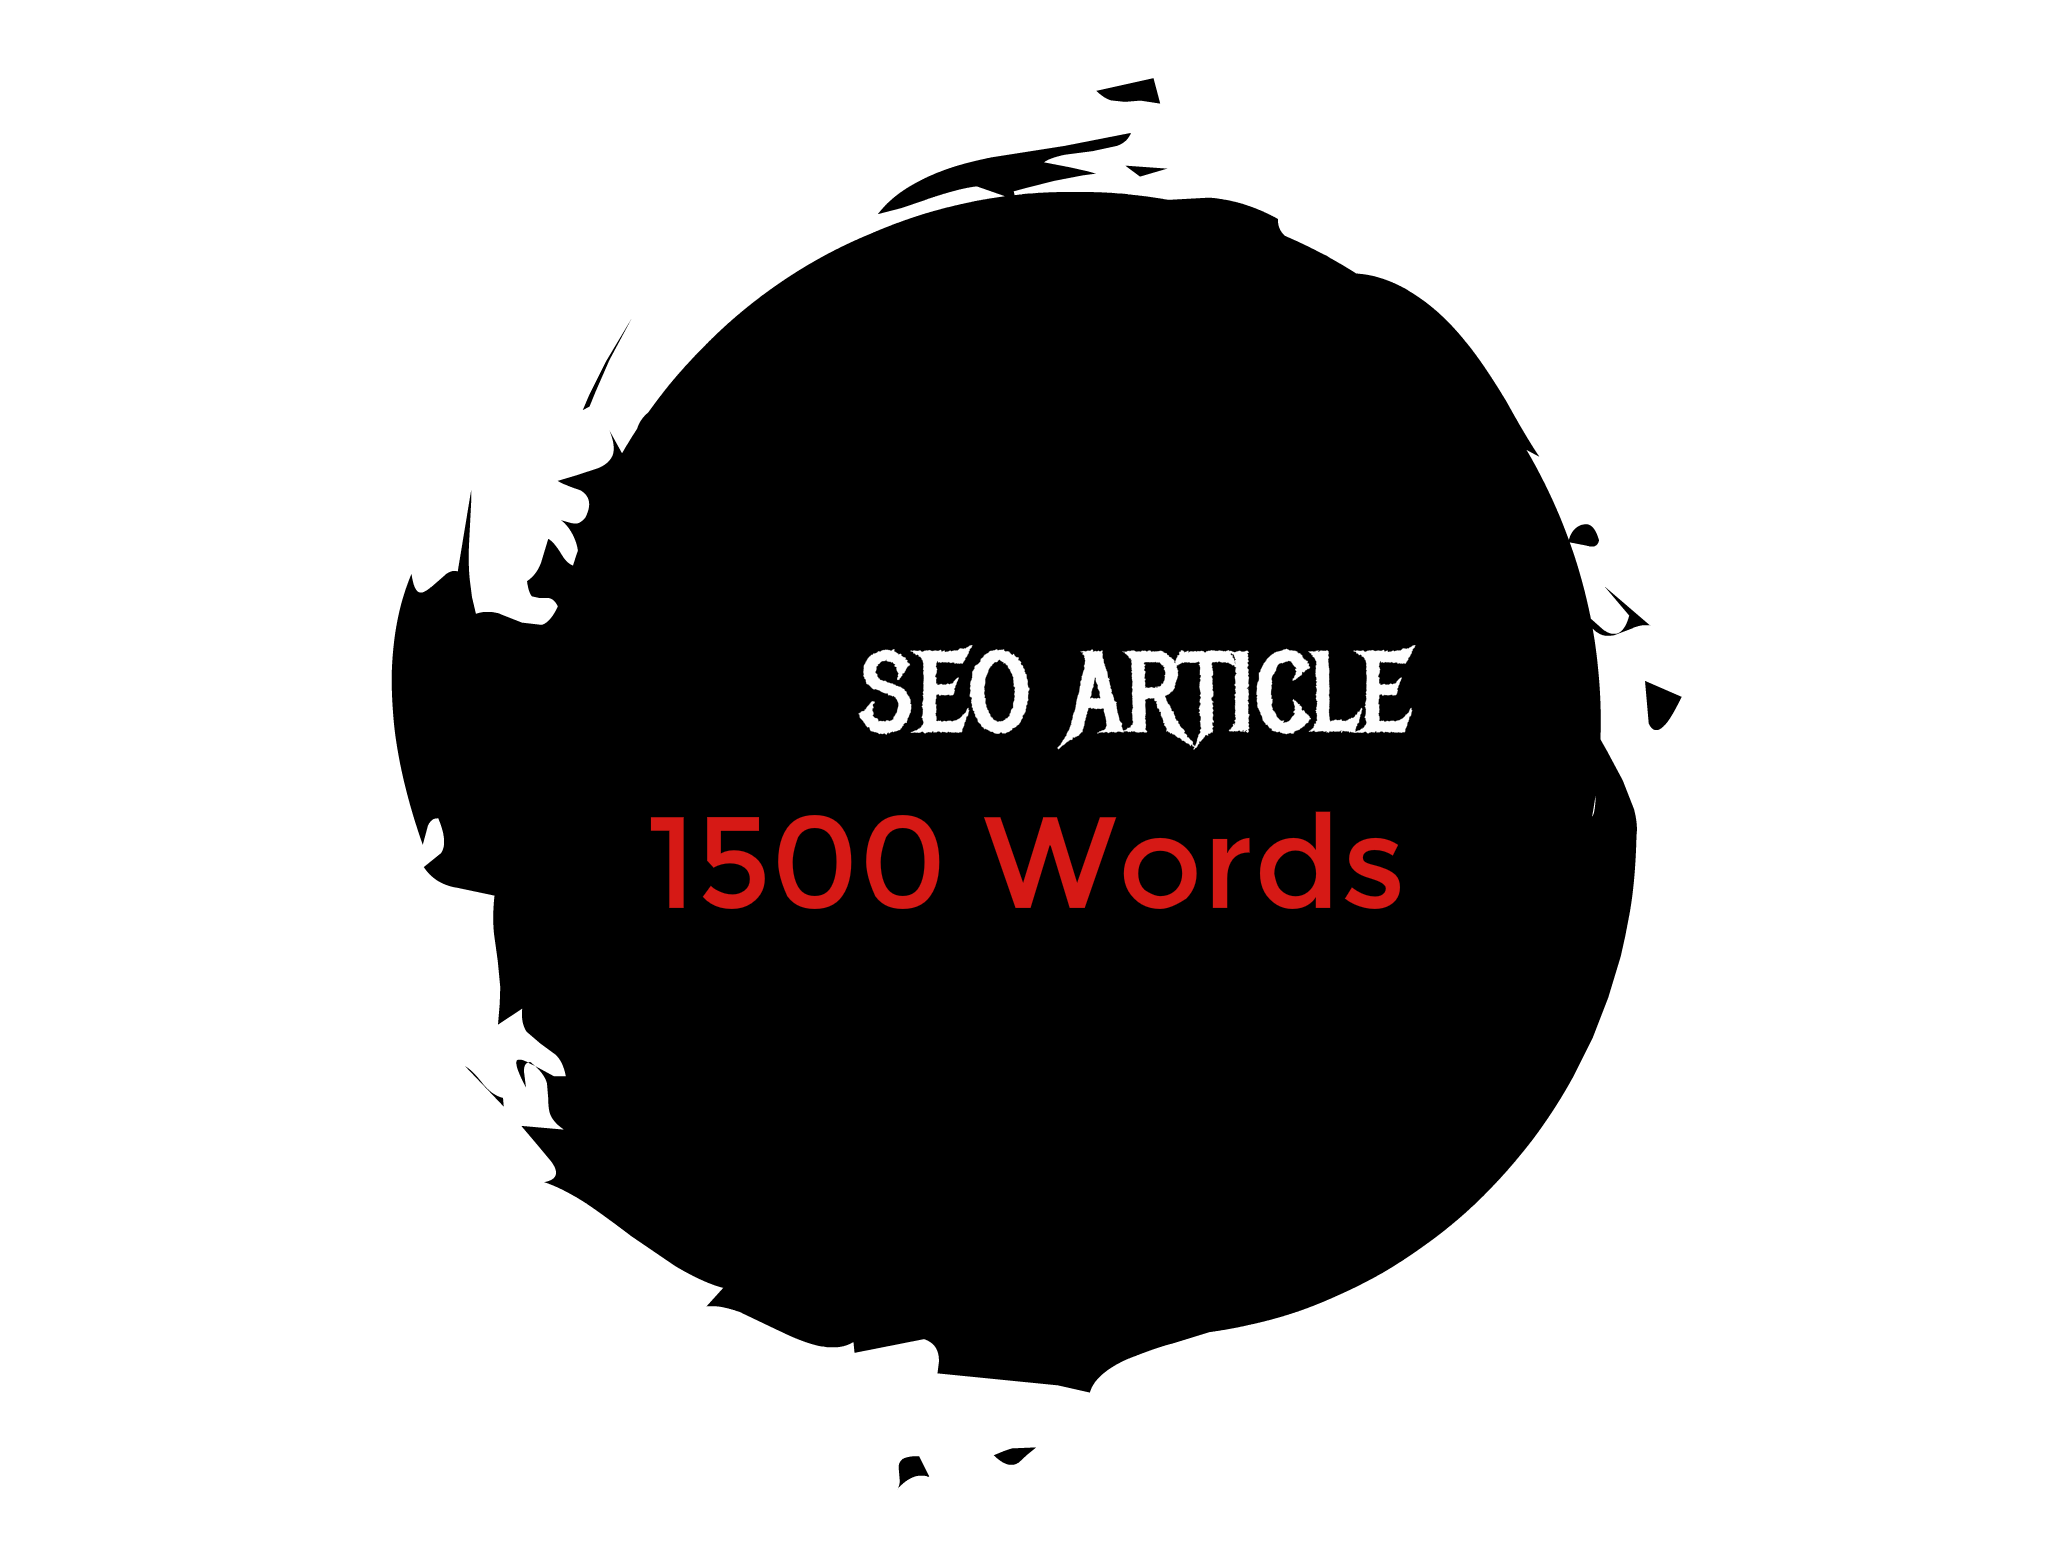 SEO Article 1500 Words